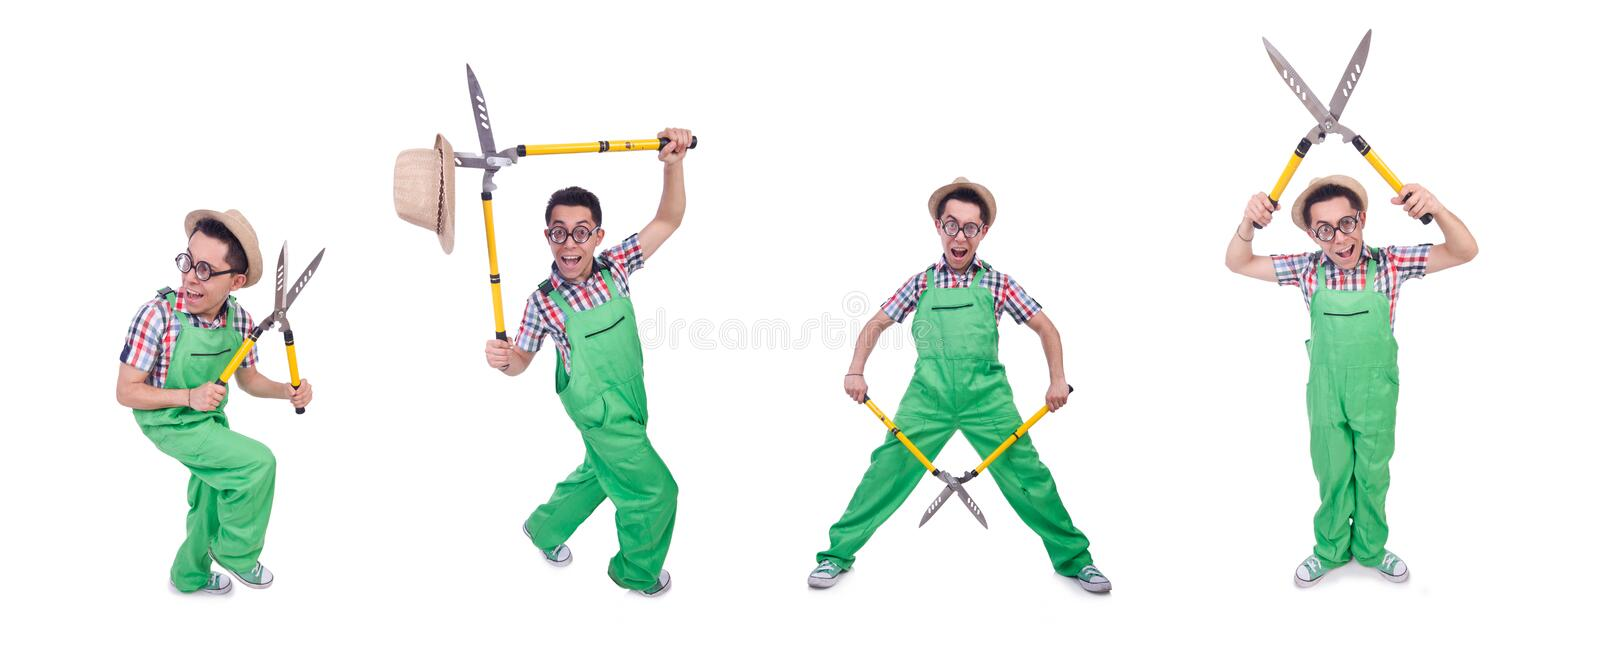 Funny man with shears on white royalty free stock photo